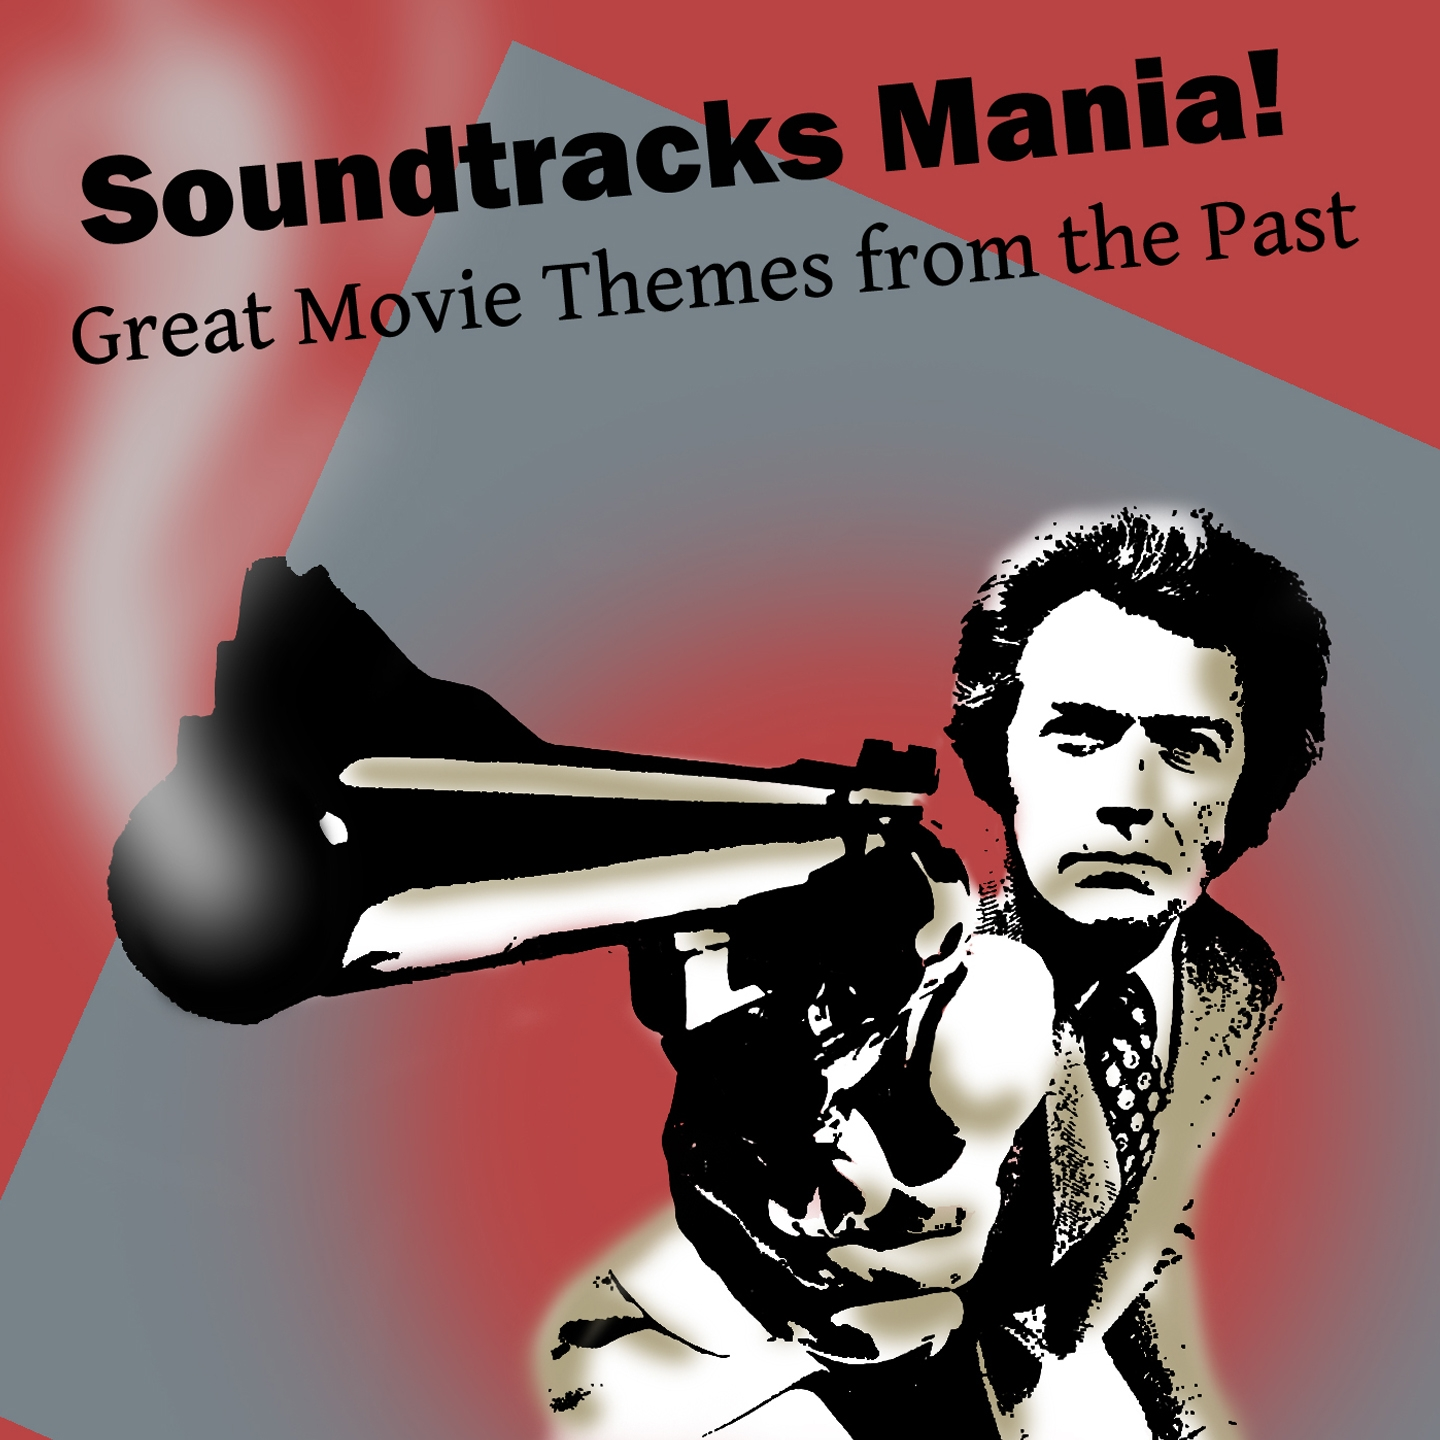 Soundtracks Mania! Great Movie Themes from the Past!